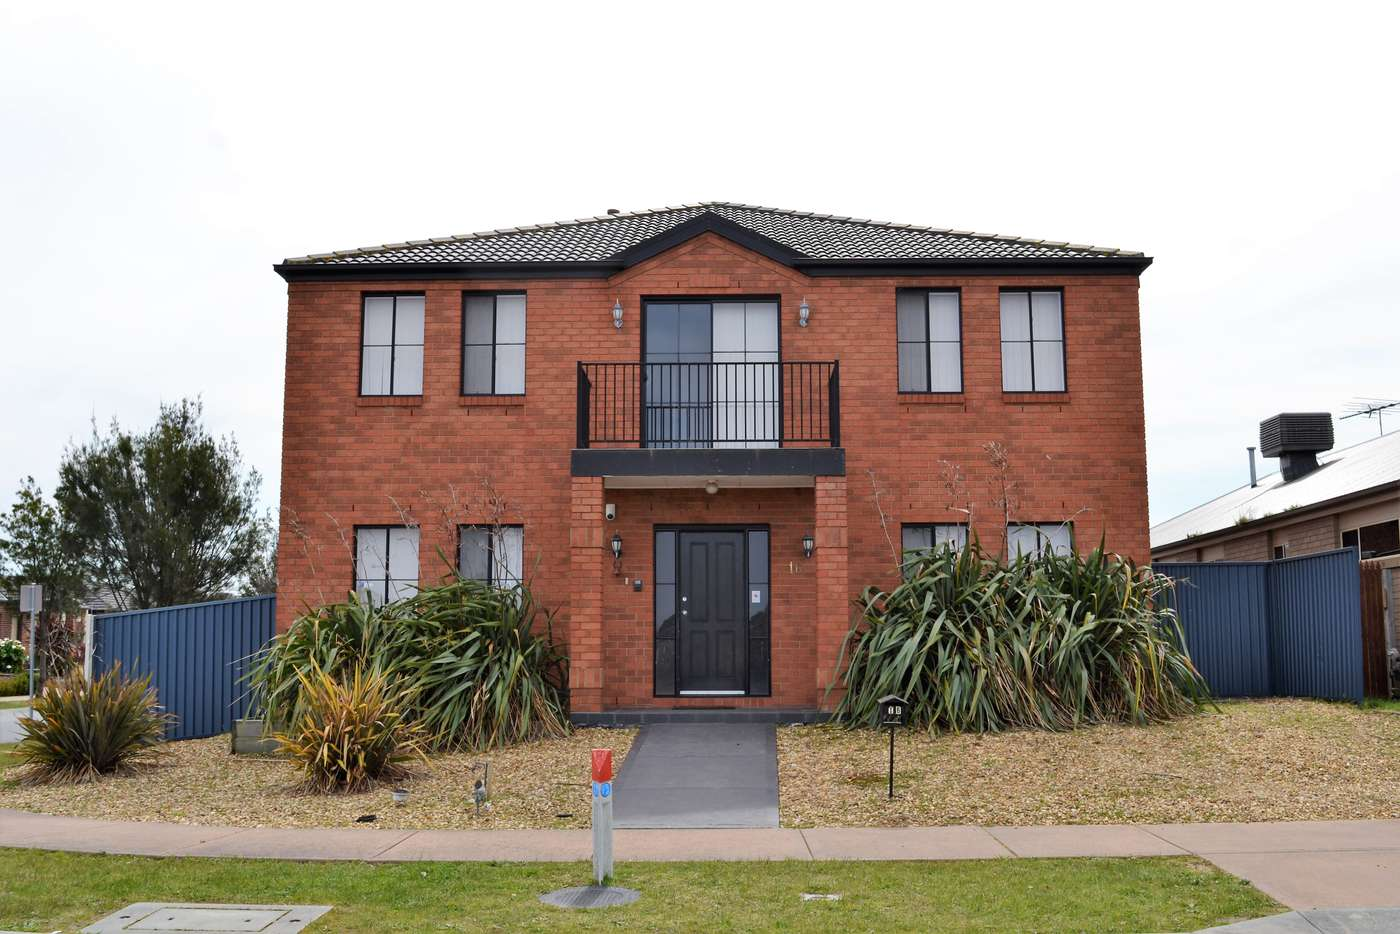 Main view of Homely house listing, 16 Laurina Link, Pakenham VIC 3810